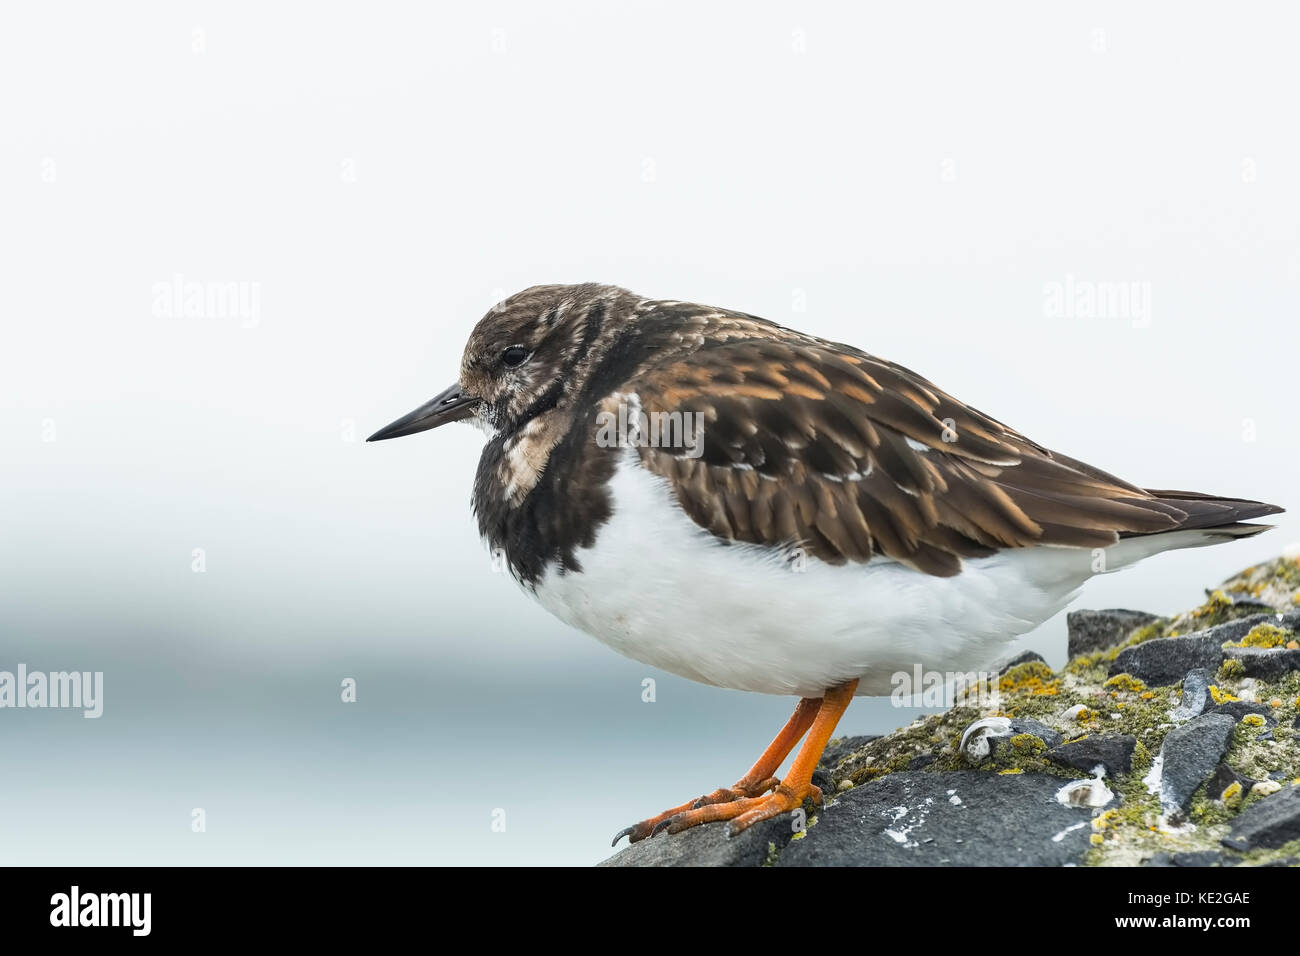 Ruddy turnstone wading bird, Arenaria interpres, foraging in between the rocks at the shore. These birds live in - Stock Image